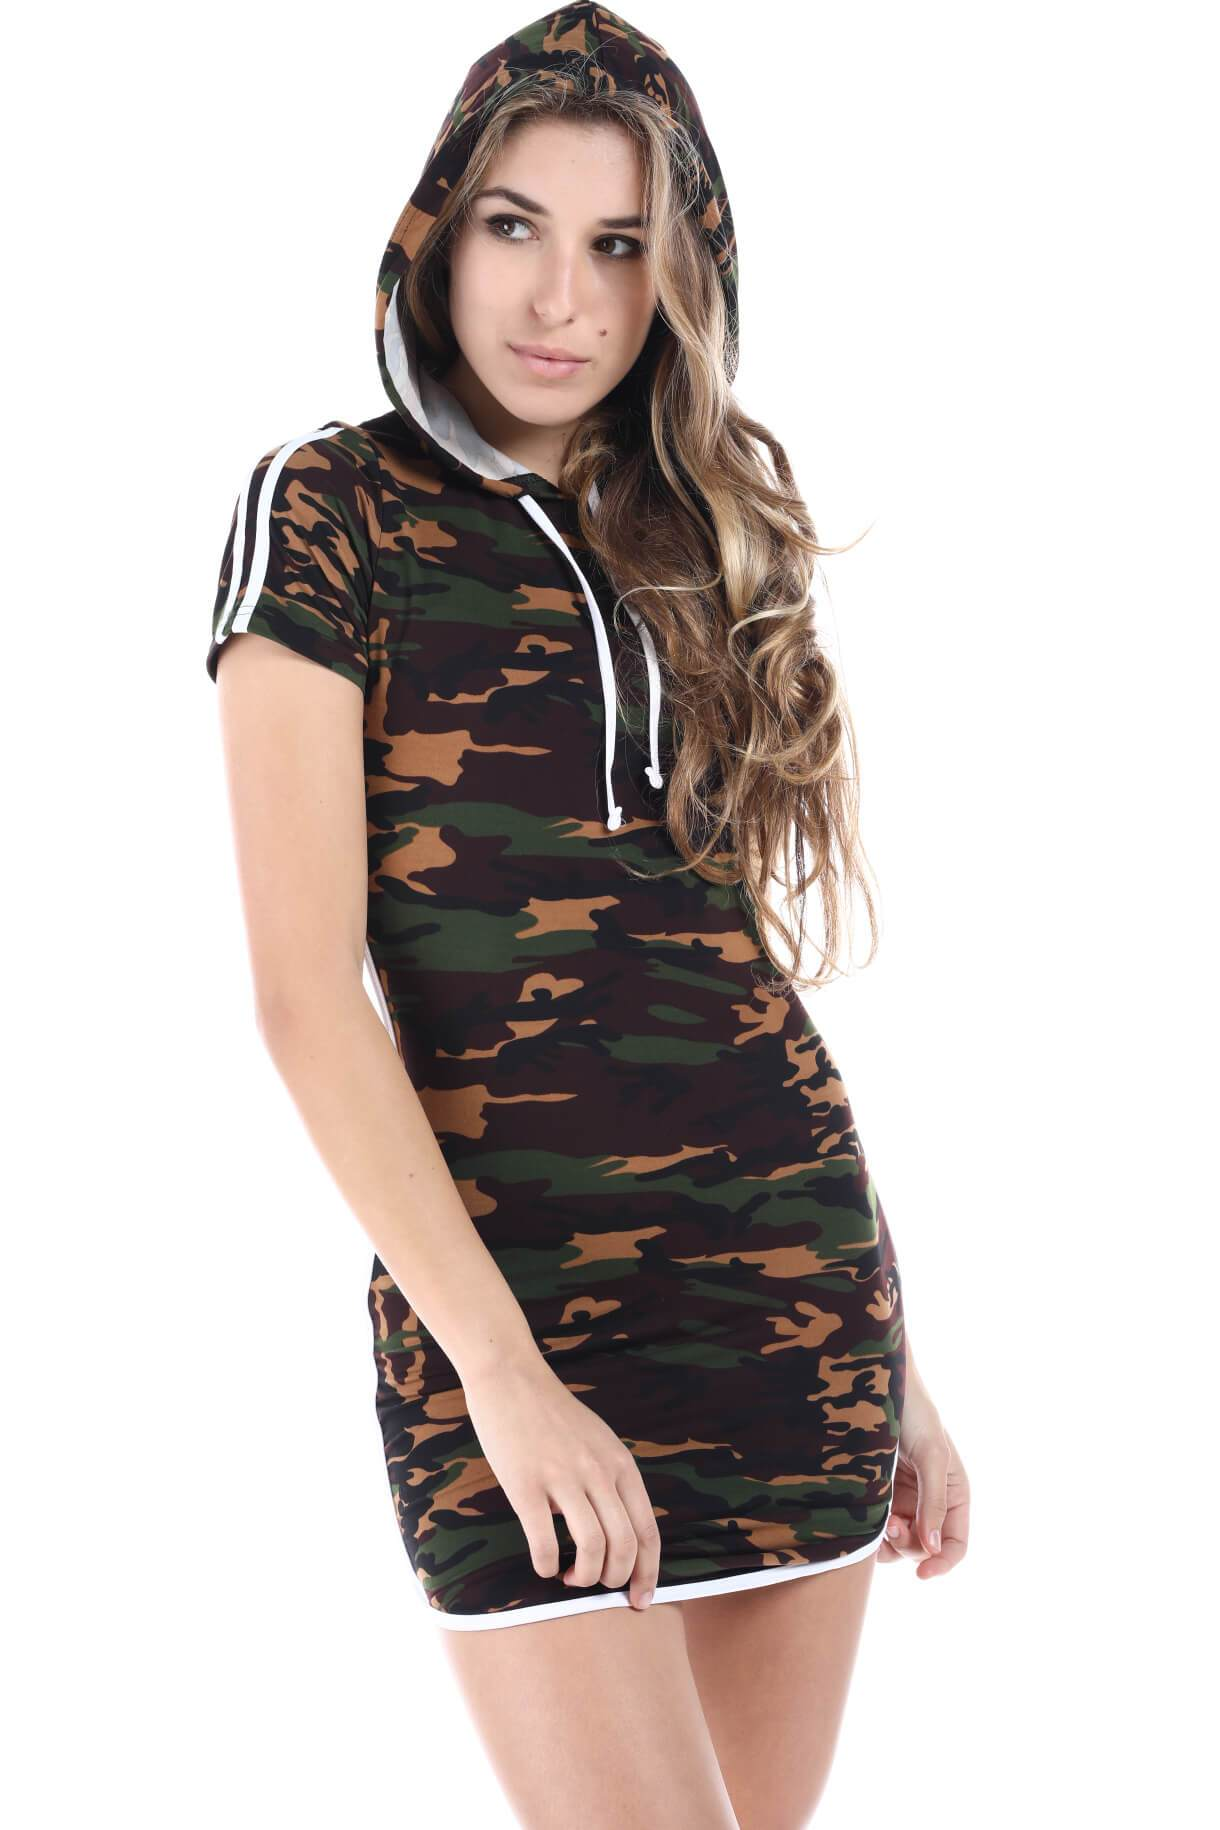 03f62f7031 JNK - Salt Tree Women's Camouflage Print Hooded Basic Stripped Dress -  Walmart.com